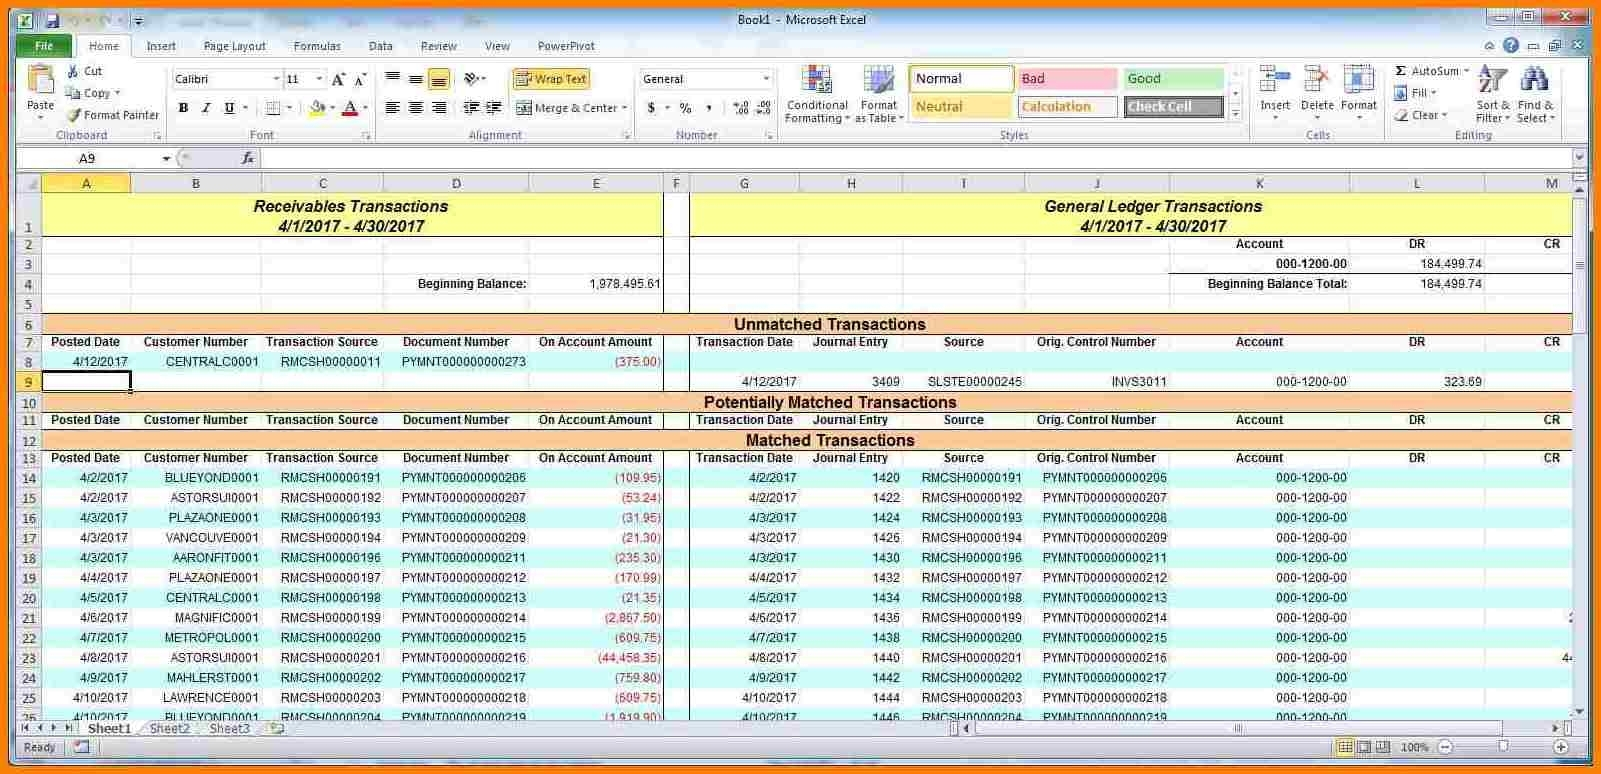 11 Accounts Payable Ledger Excel Template Microsoft | Ledger Entries With Free Accounts Payable Templates